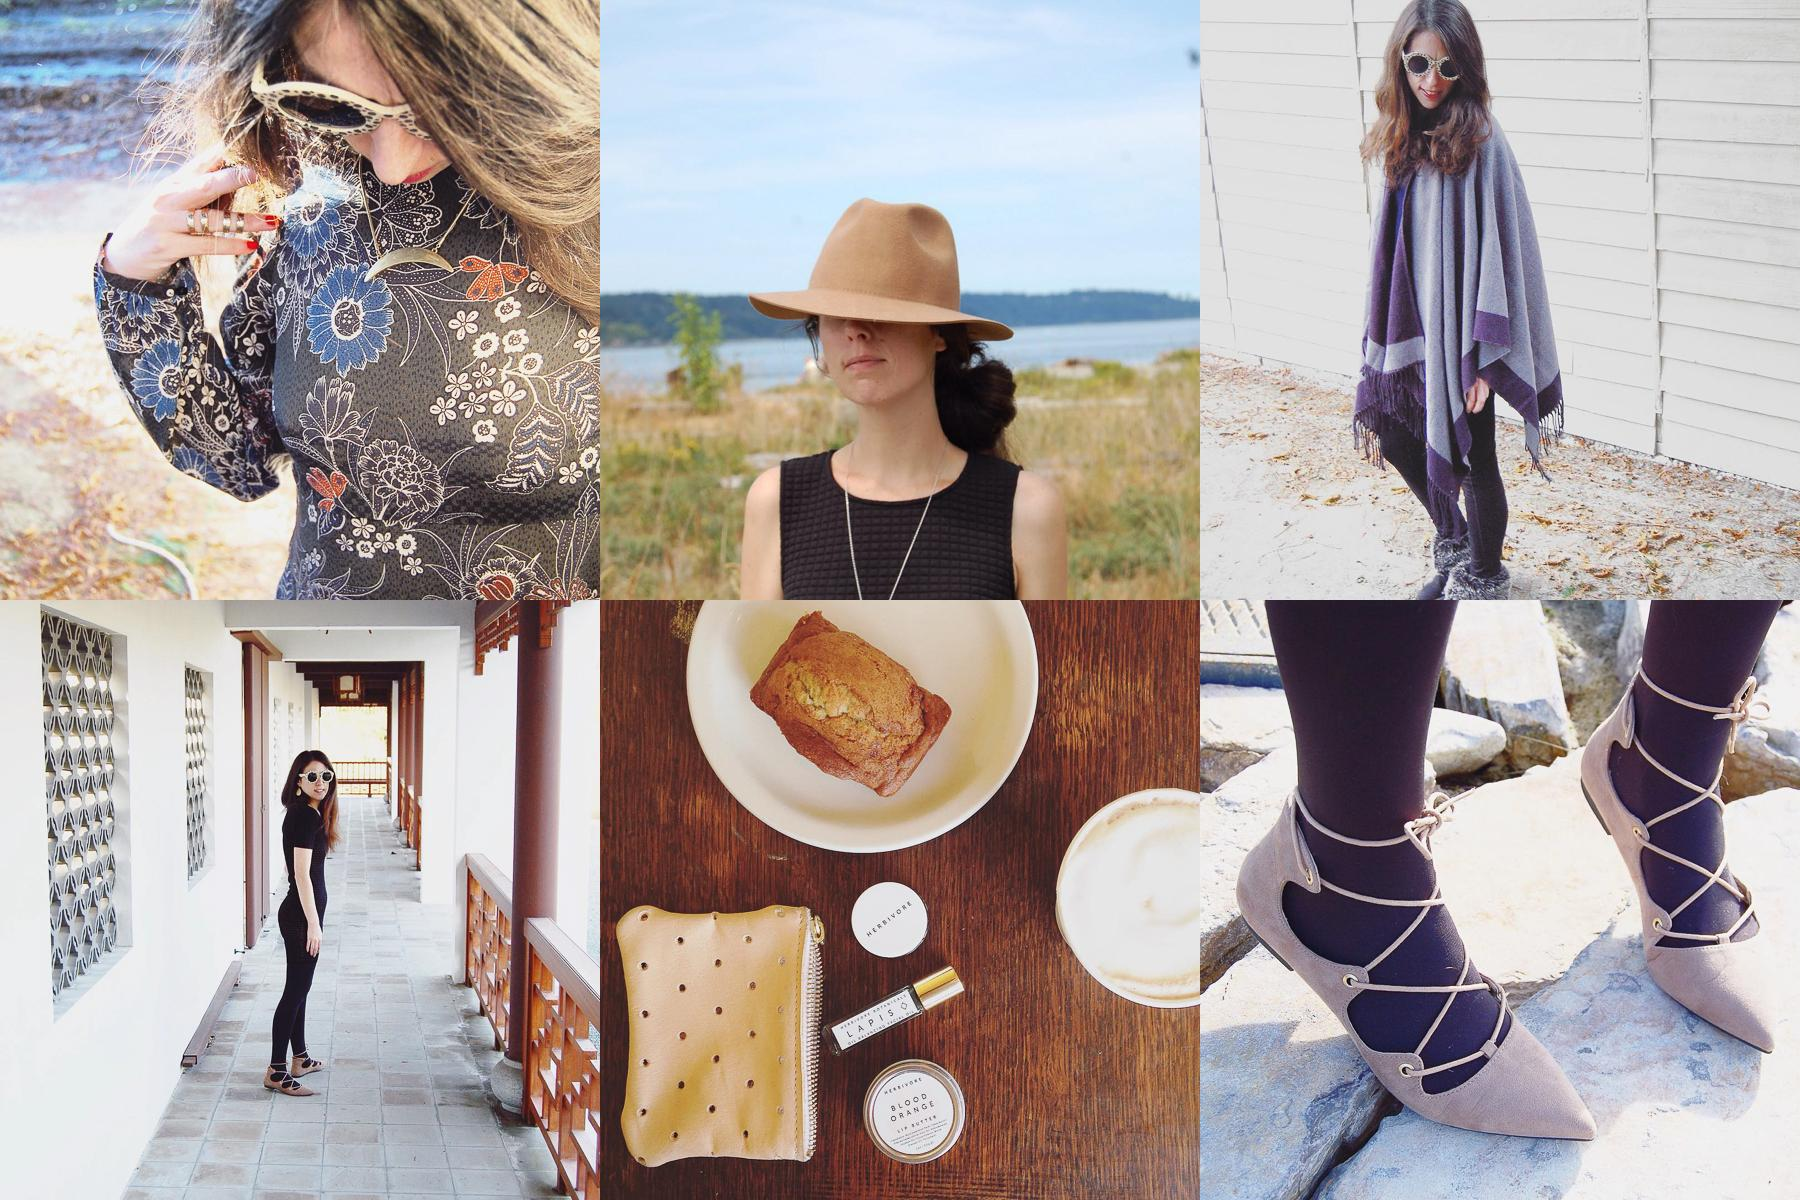 Lisa Dawn Drogin's Instagram has a very vintage feel with a lot of 70s inspiration. Wether she is thrifting some great pieces or showing off her accessories she is full of fashion ideas so give her at follow. (Images courtesy of @storyofmydress)